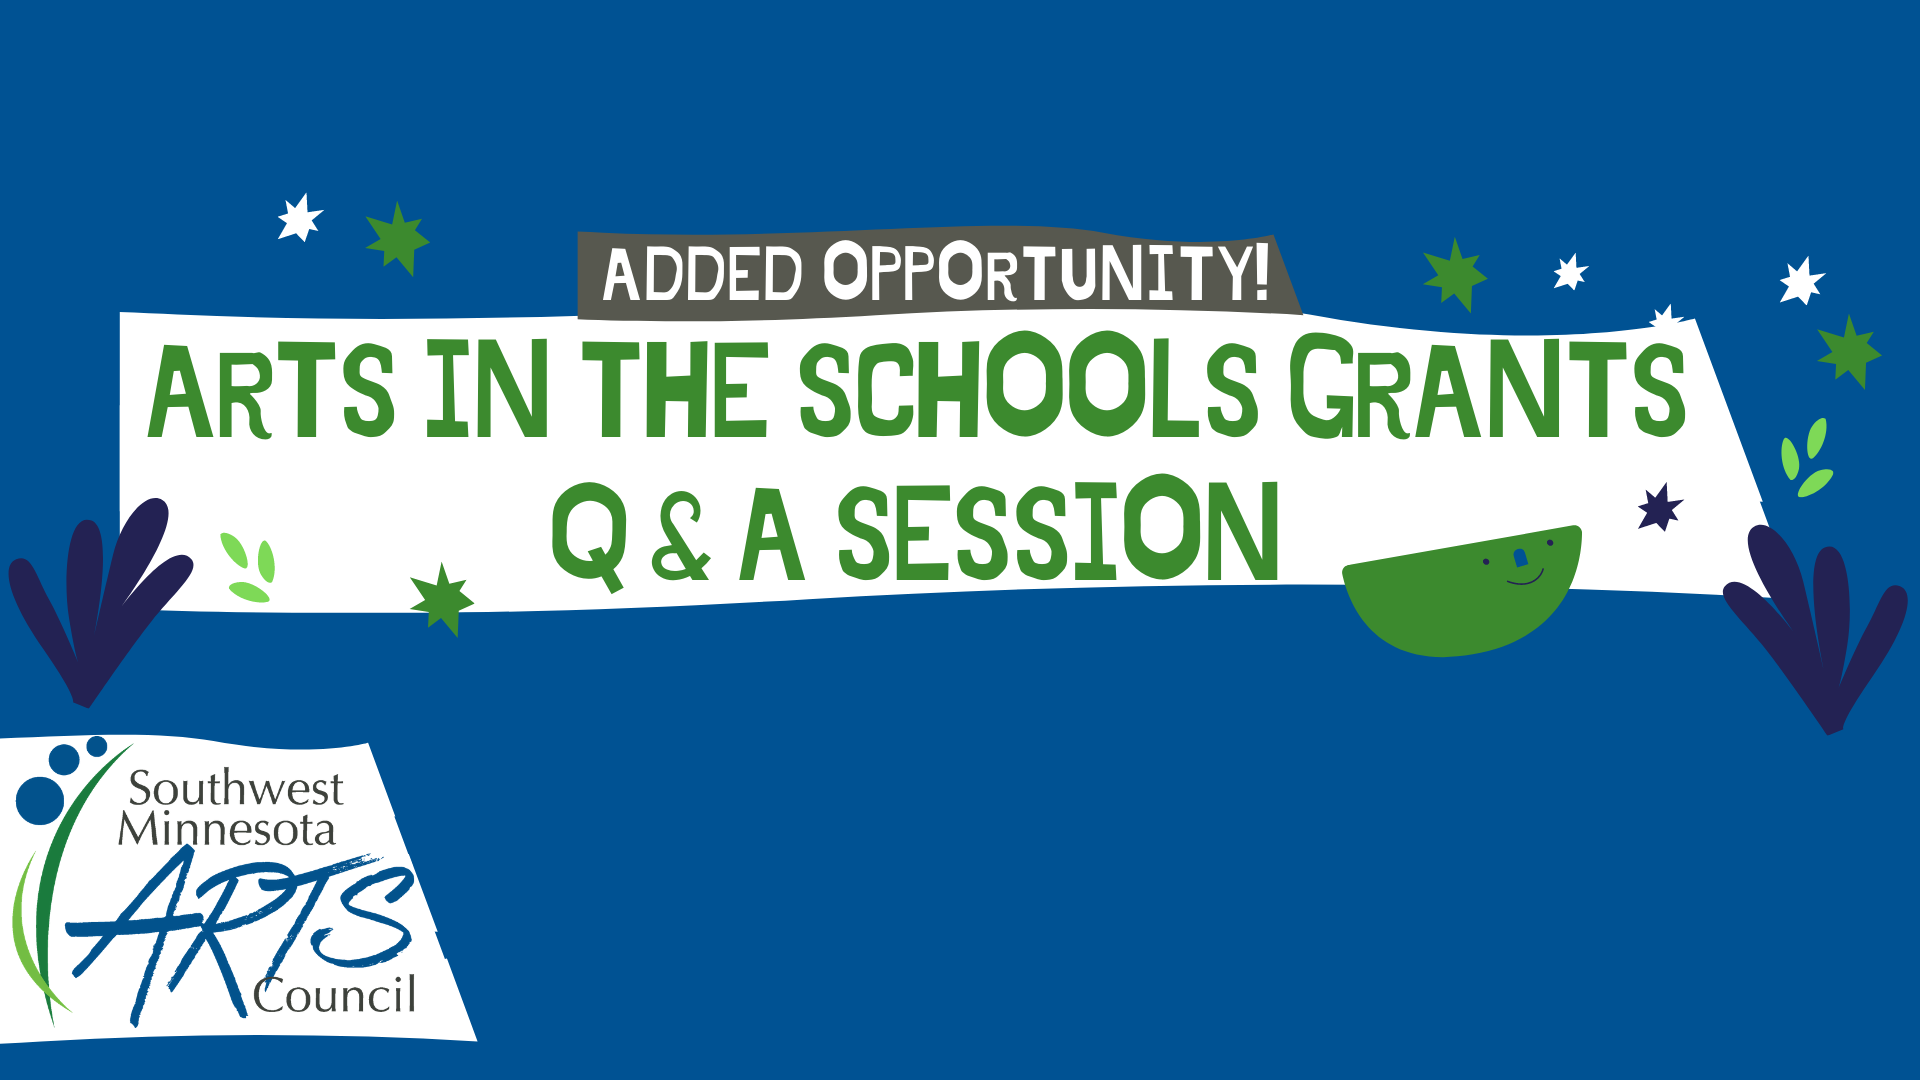 Added Opportunity. Arts in the Schools Grants Q & A Session. Southwest Minnesota Arts Council.